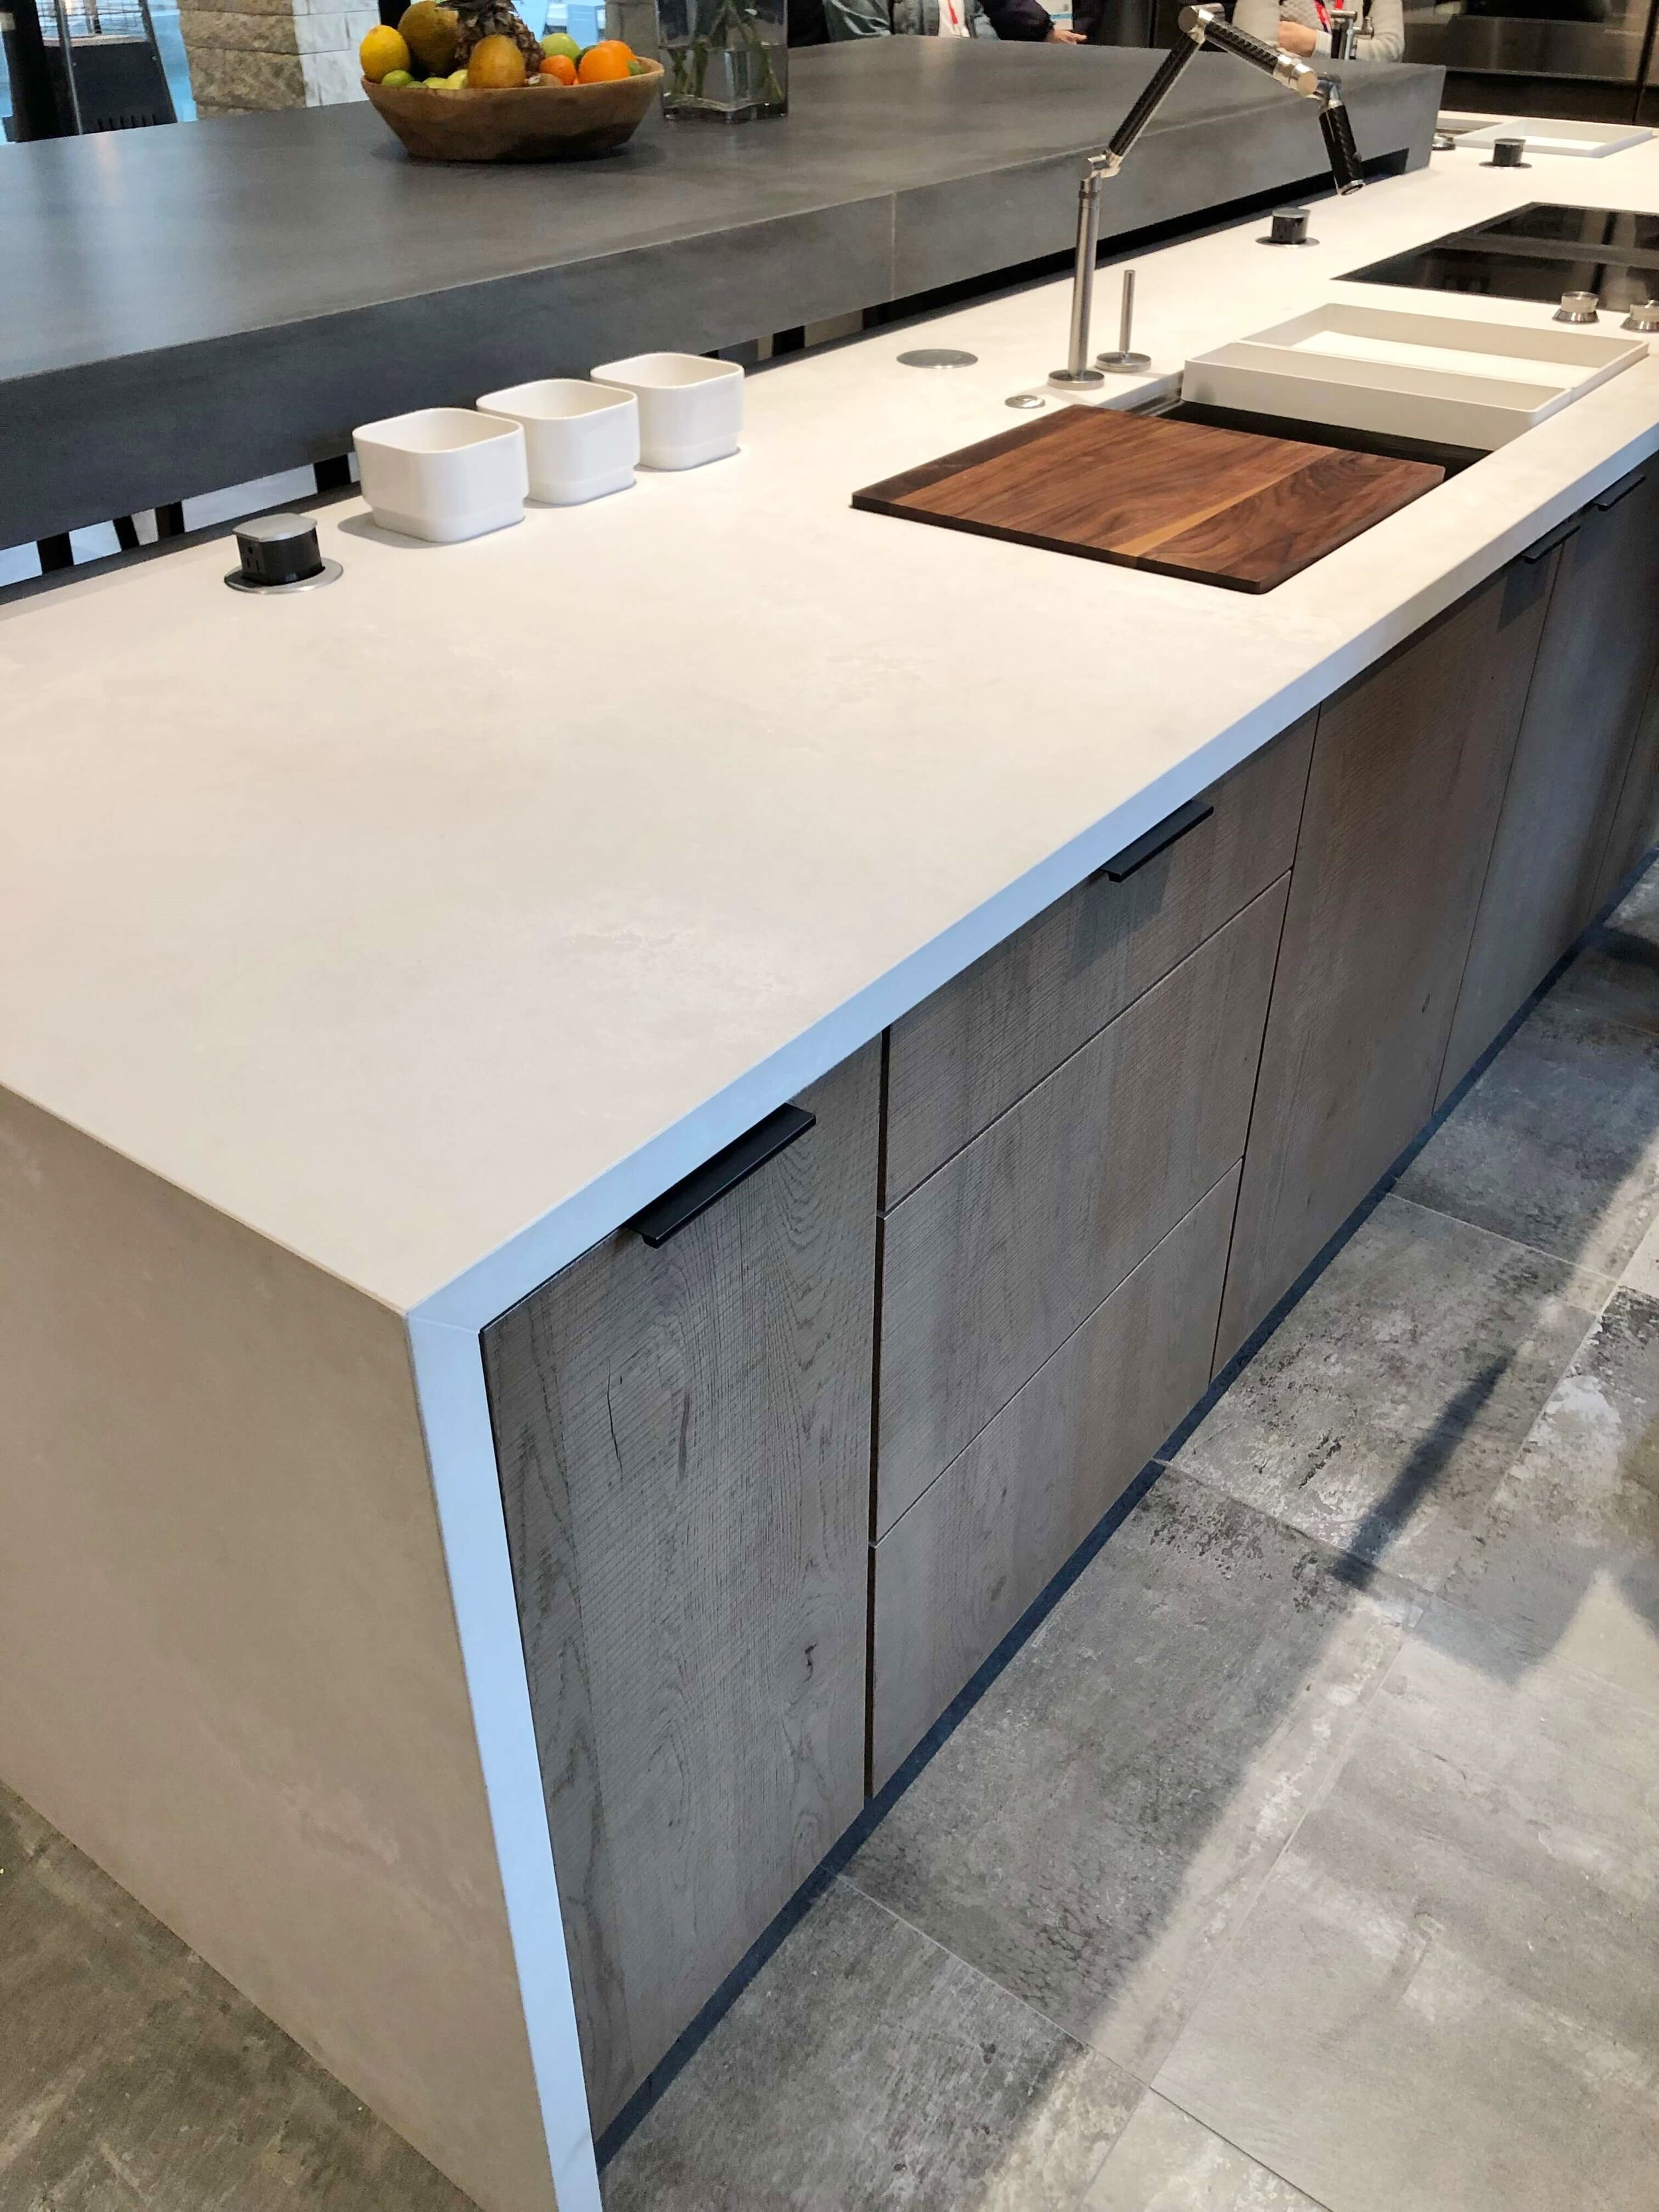 These round pop-up type outlets are useful with big islands or at low bar tops in the kitchen. The New American Remodel | #kitchenbar #kitchendesign #kitchencountertop